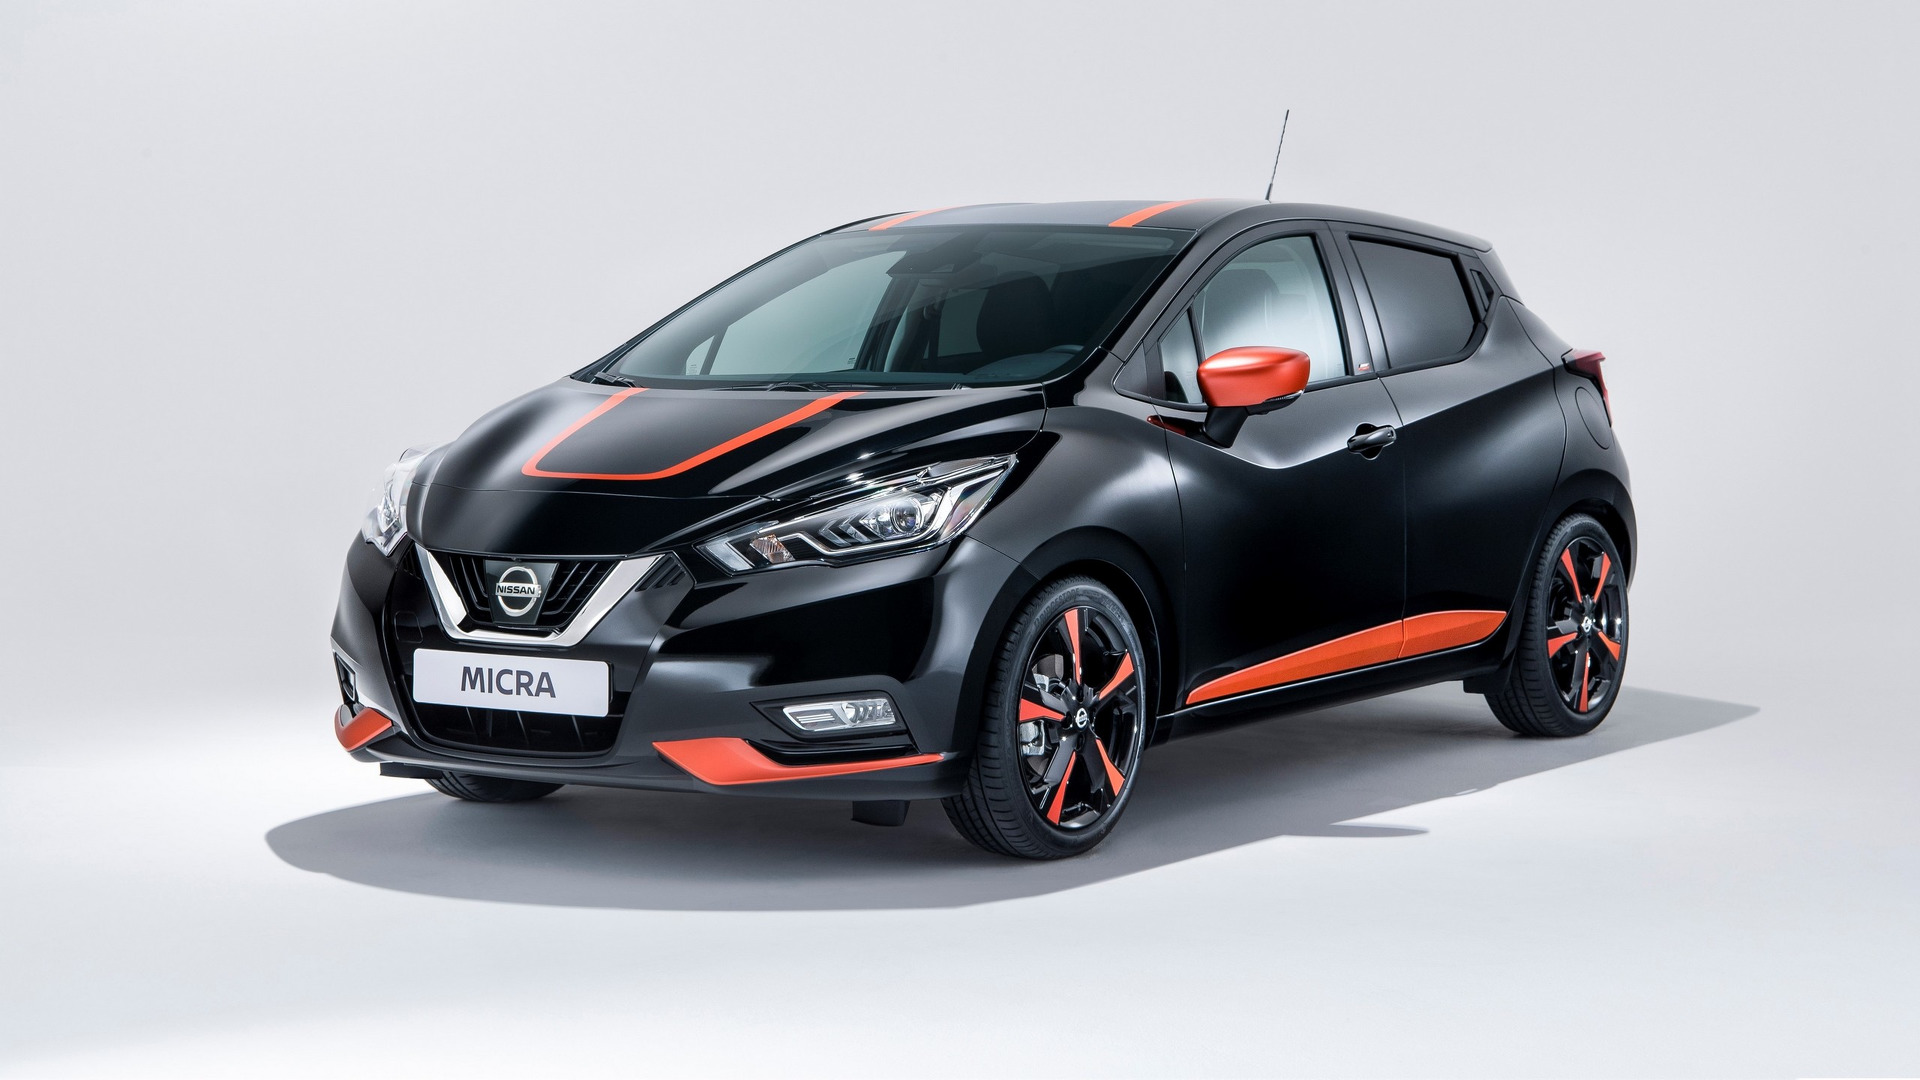 Nissan Micra Bose Personal Edition pumps up the volume in Geneva